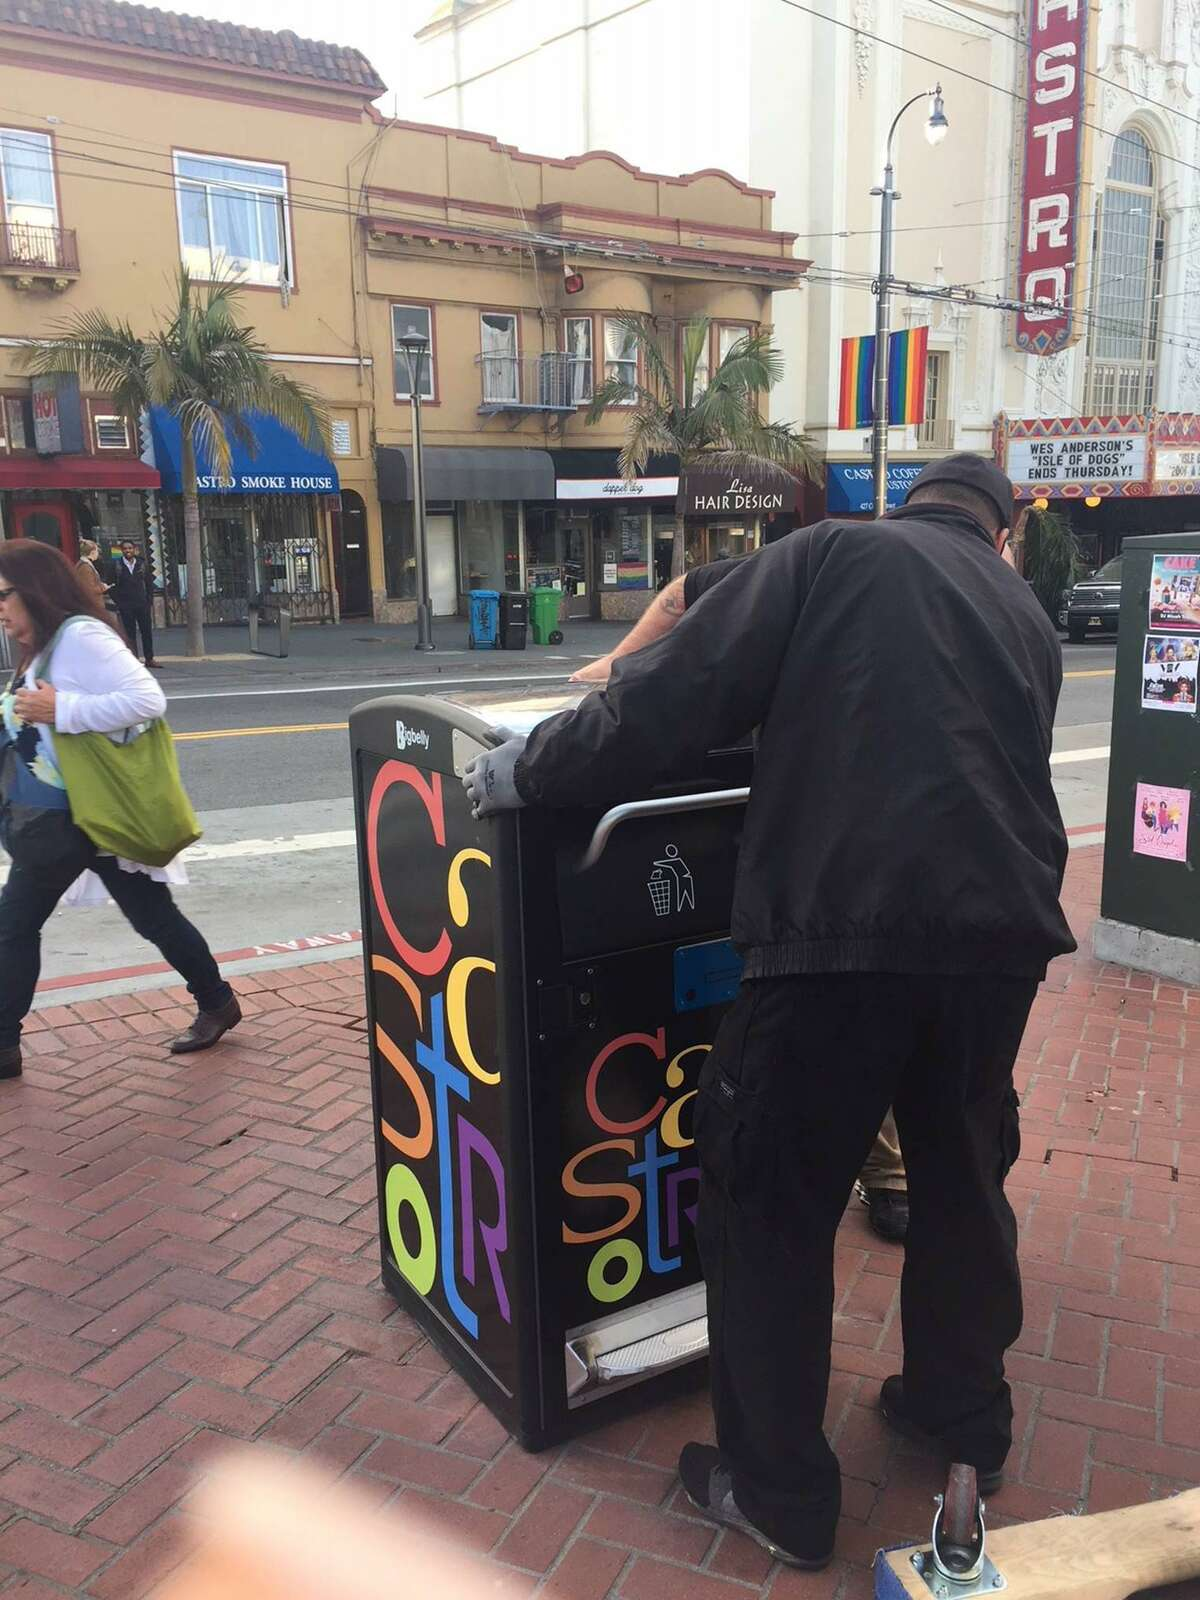 Workers install a Bigbelly trash bin near the Castro Theatre in San Francisco on Tuesday May 1, 2018.